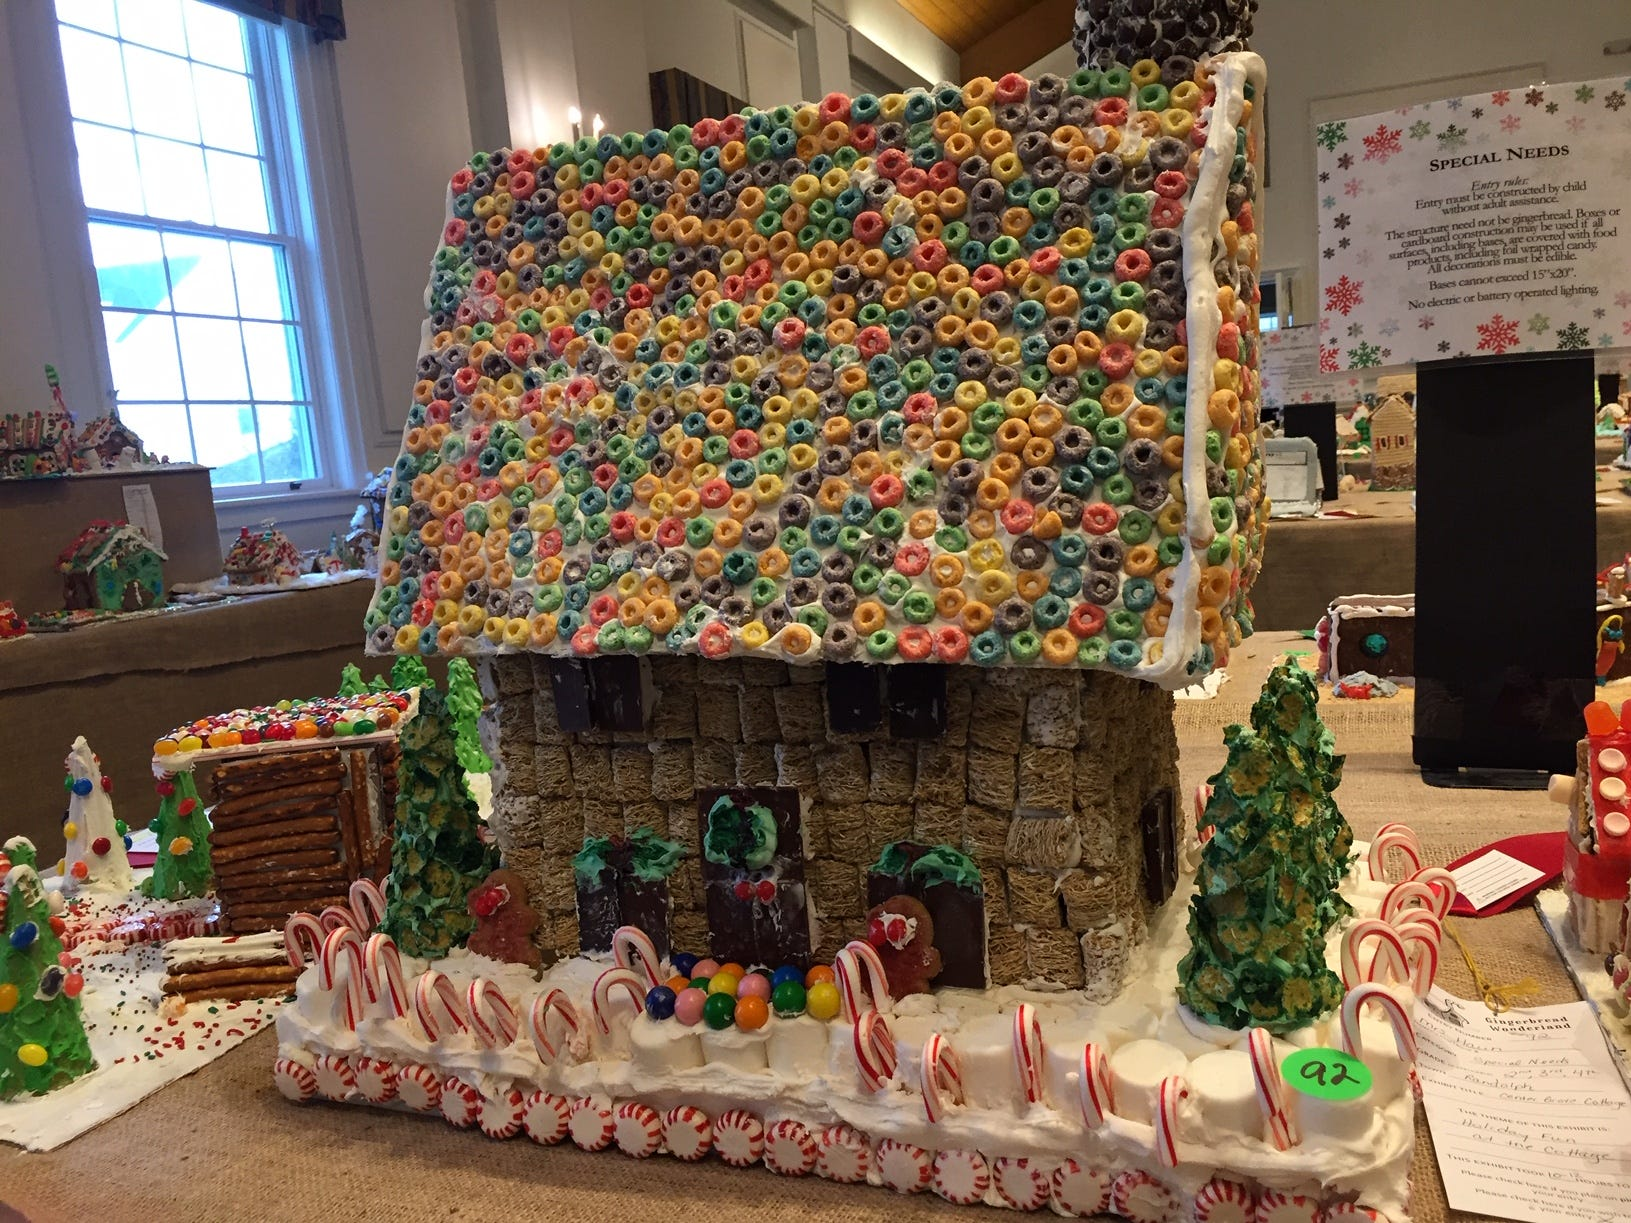 """Center Grove Cottage"" by Mrs. Haun's classes, Randolph, grades 2-4, at the Gingerbread Wonderland at the Frelinghuysen Arboretum. Special Needs category."